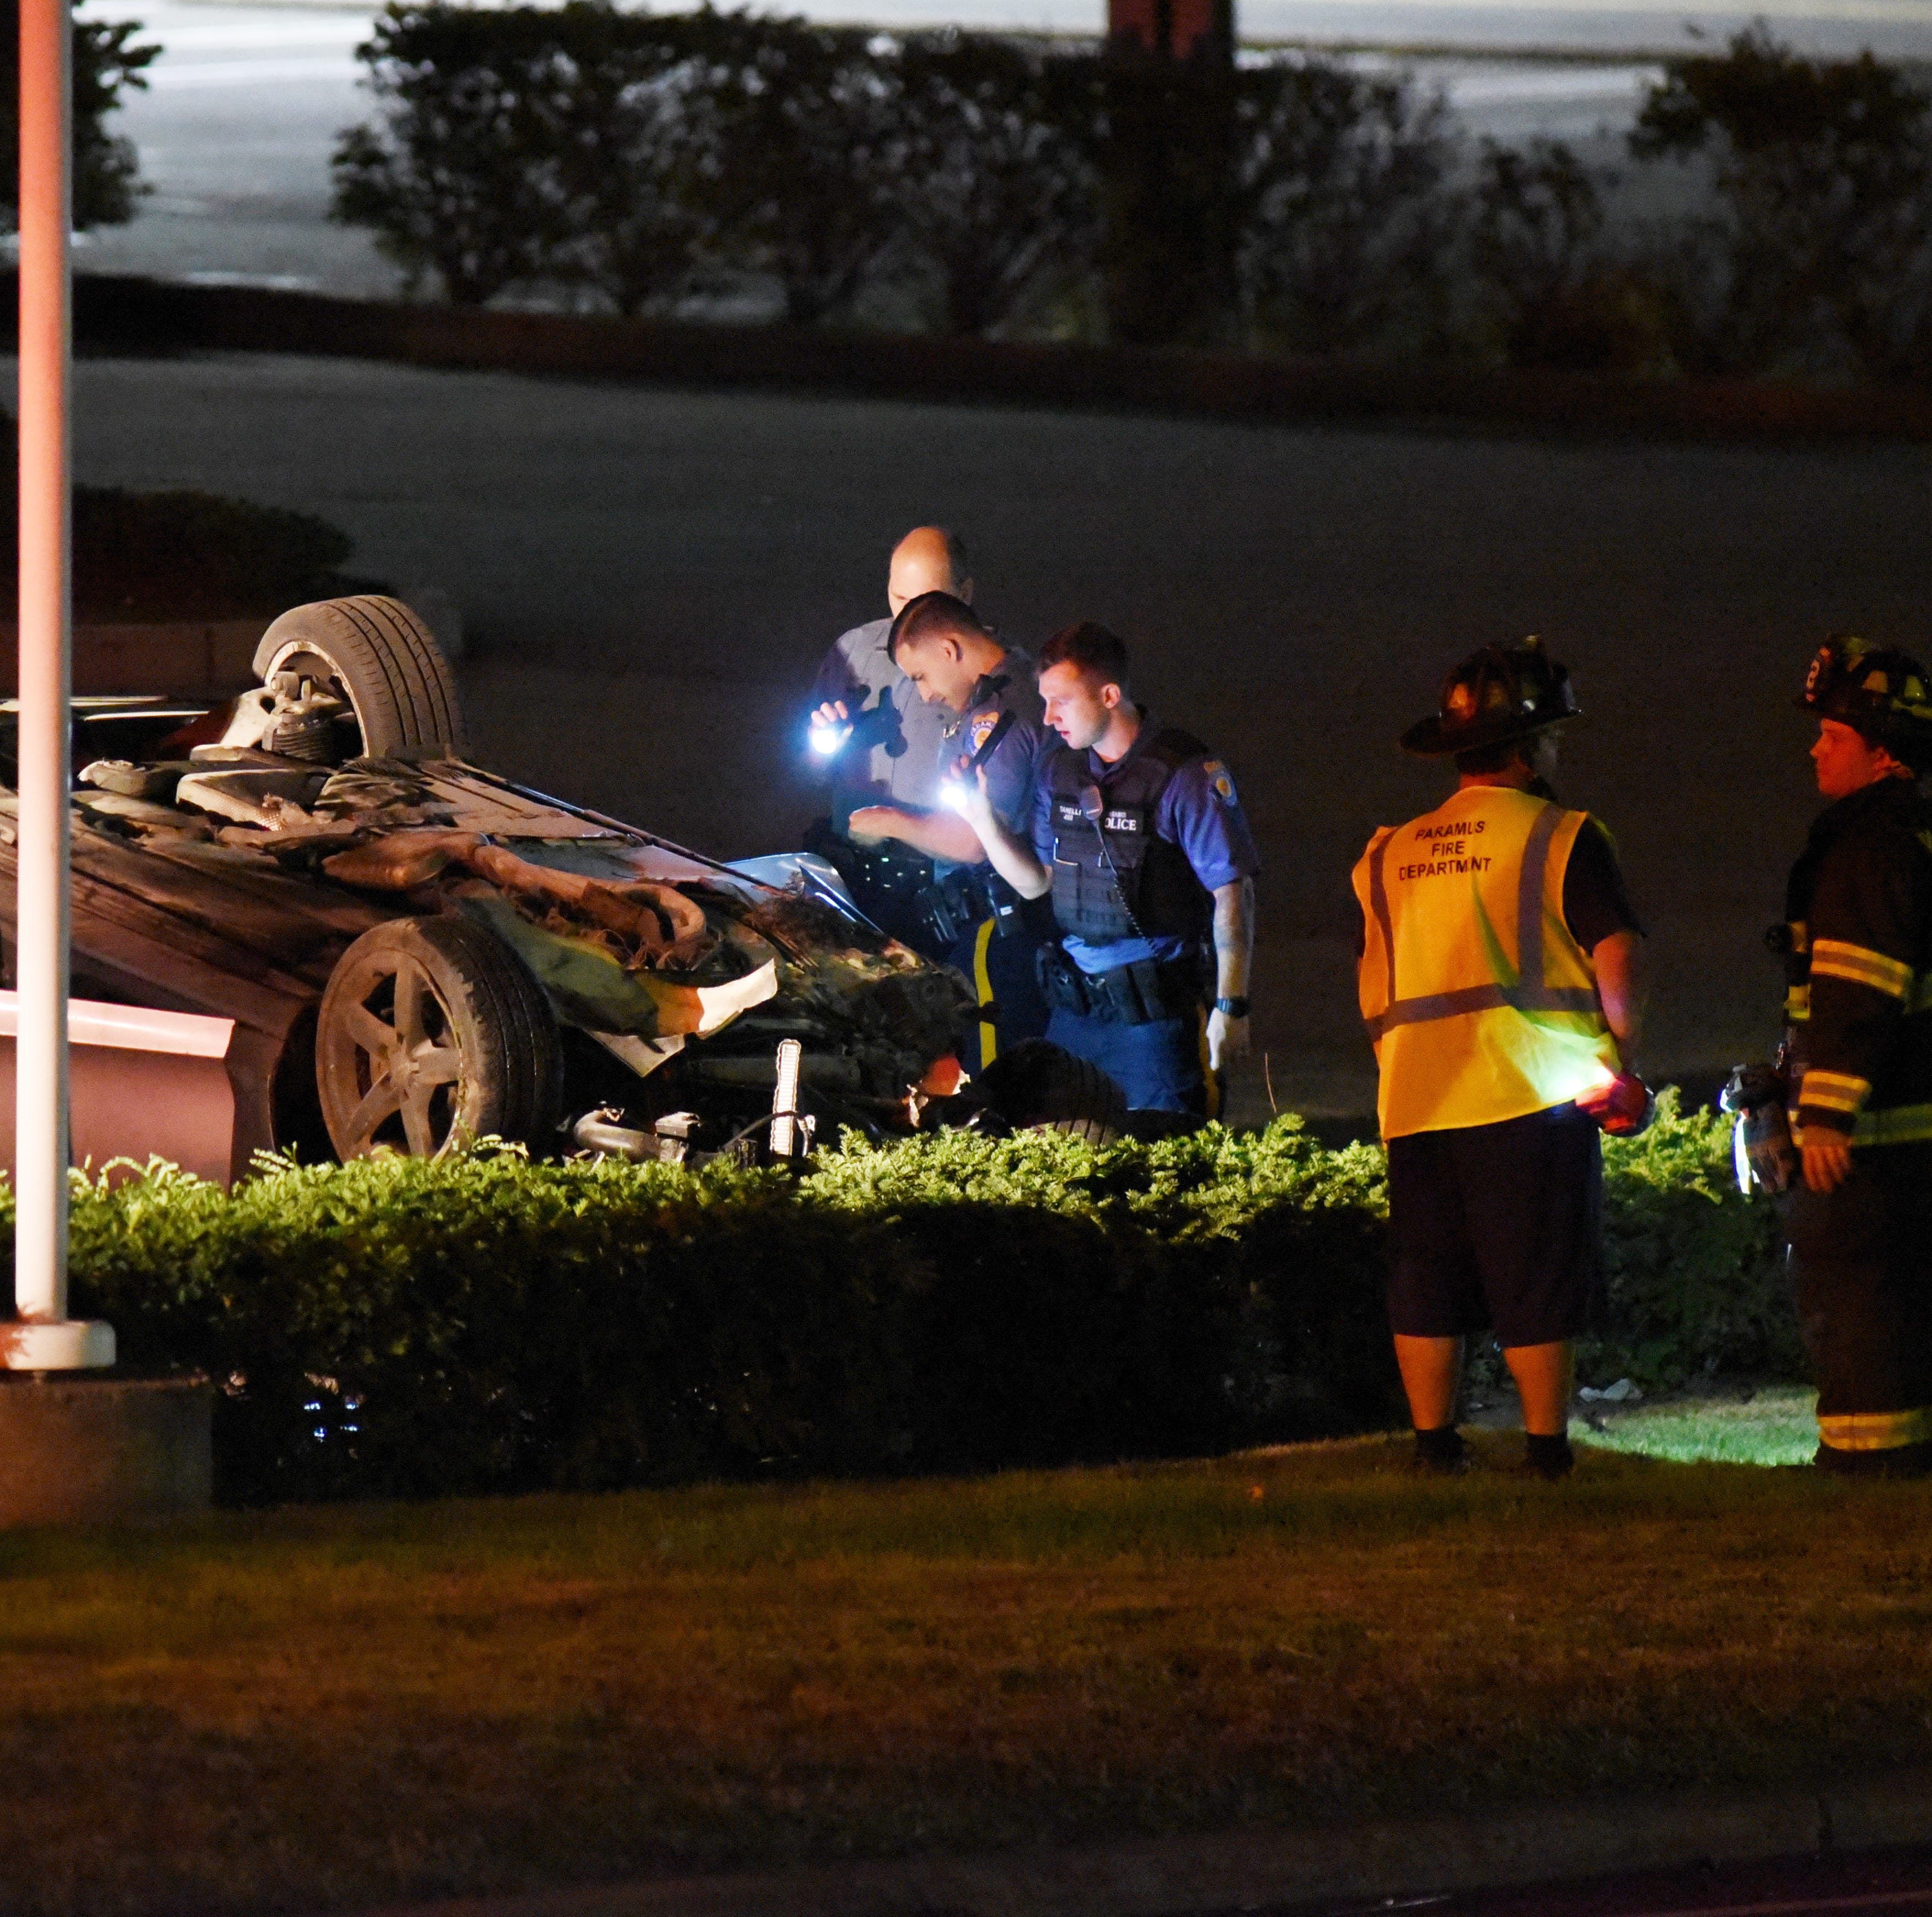 Fair Lawn man arrested in Route 4 Paramus crash that left one person seriously hurt